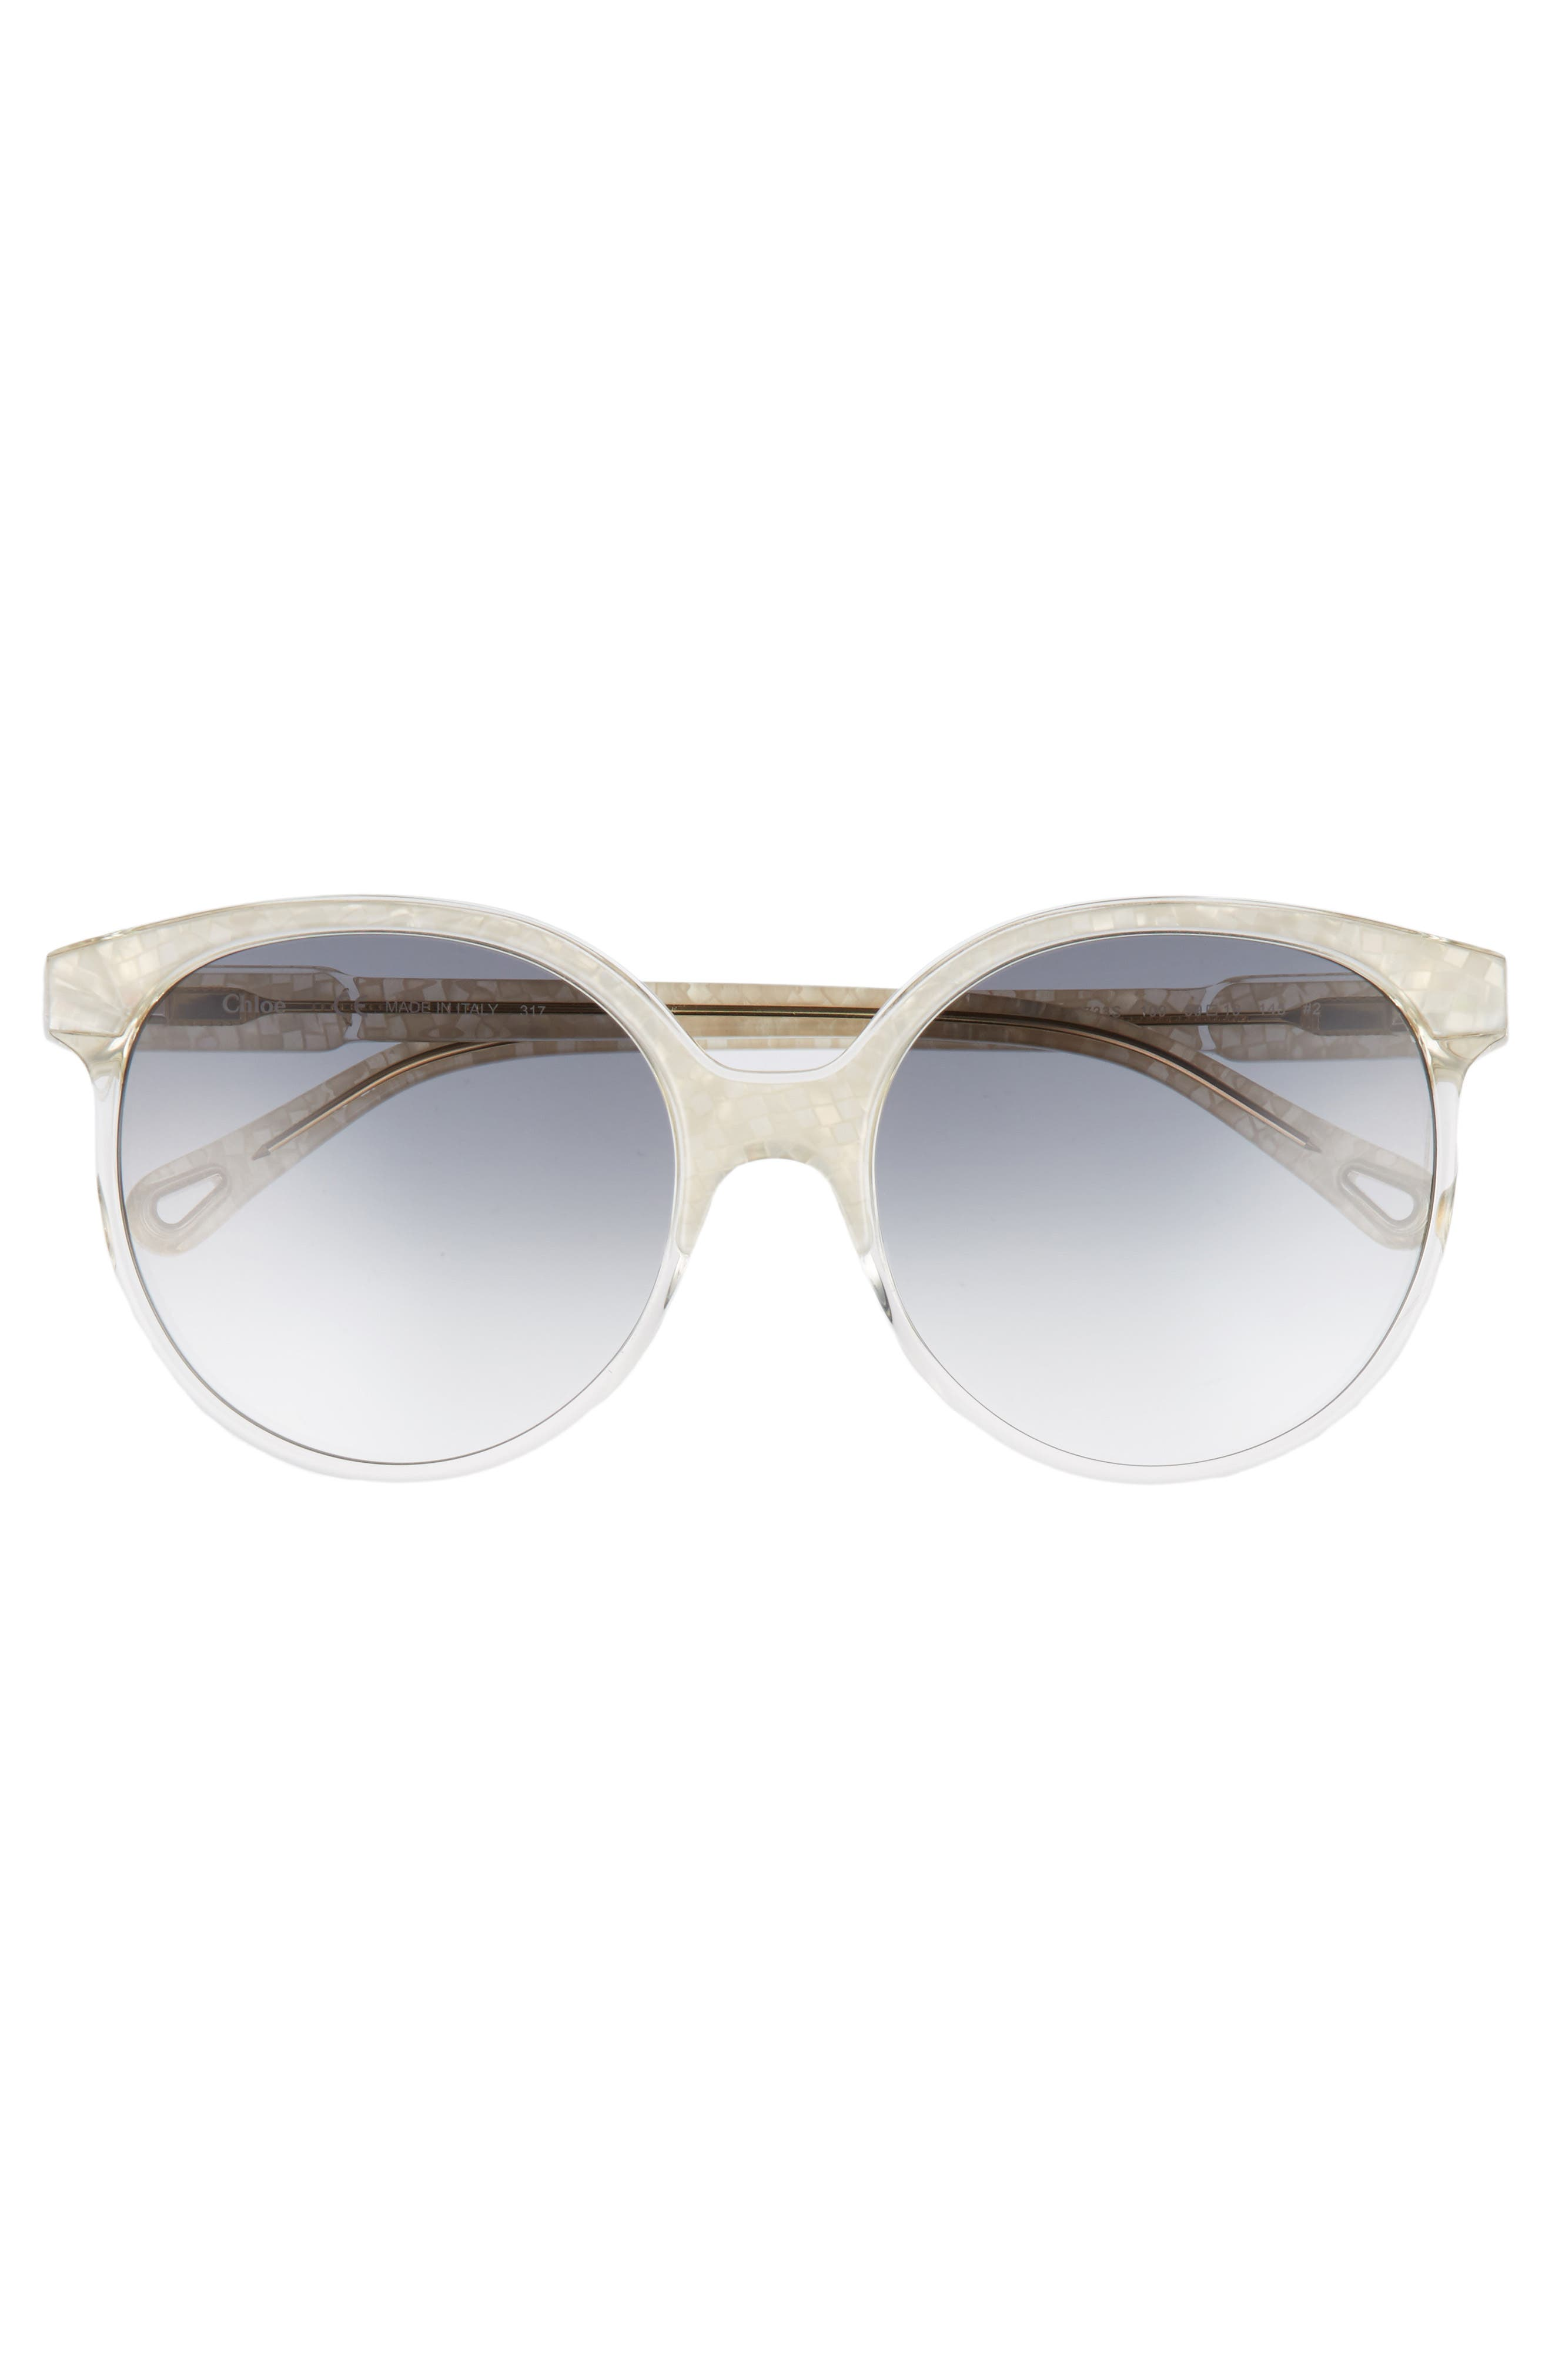 59mm Round Sunglasses,                             Alternate thumbnail 3, color,                             Pearl/ Champagne